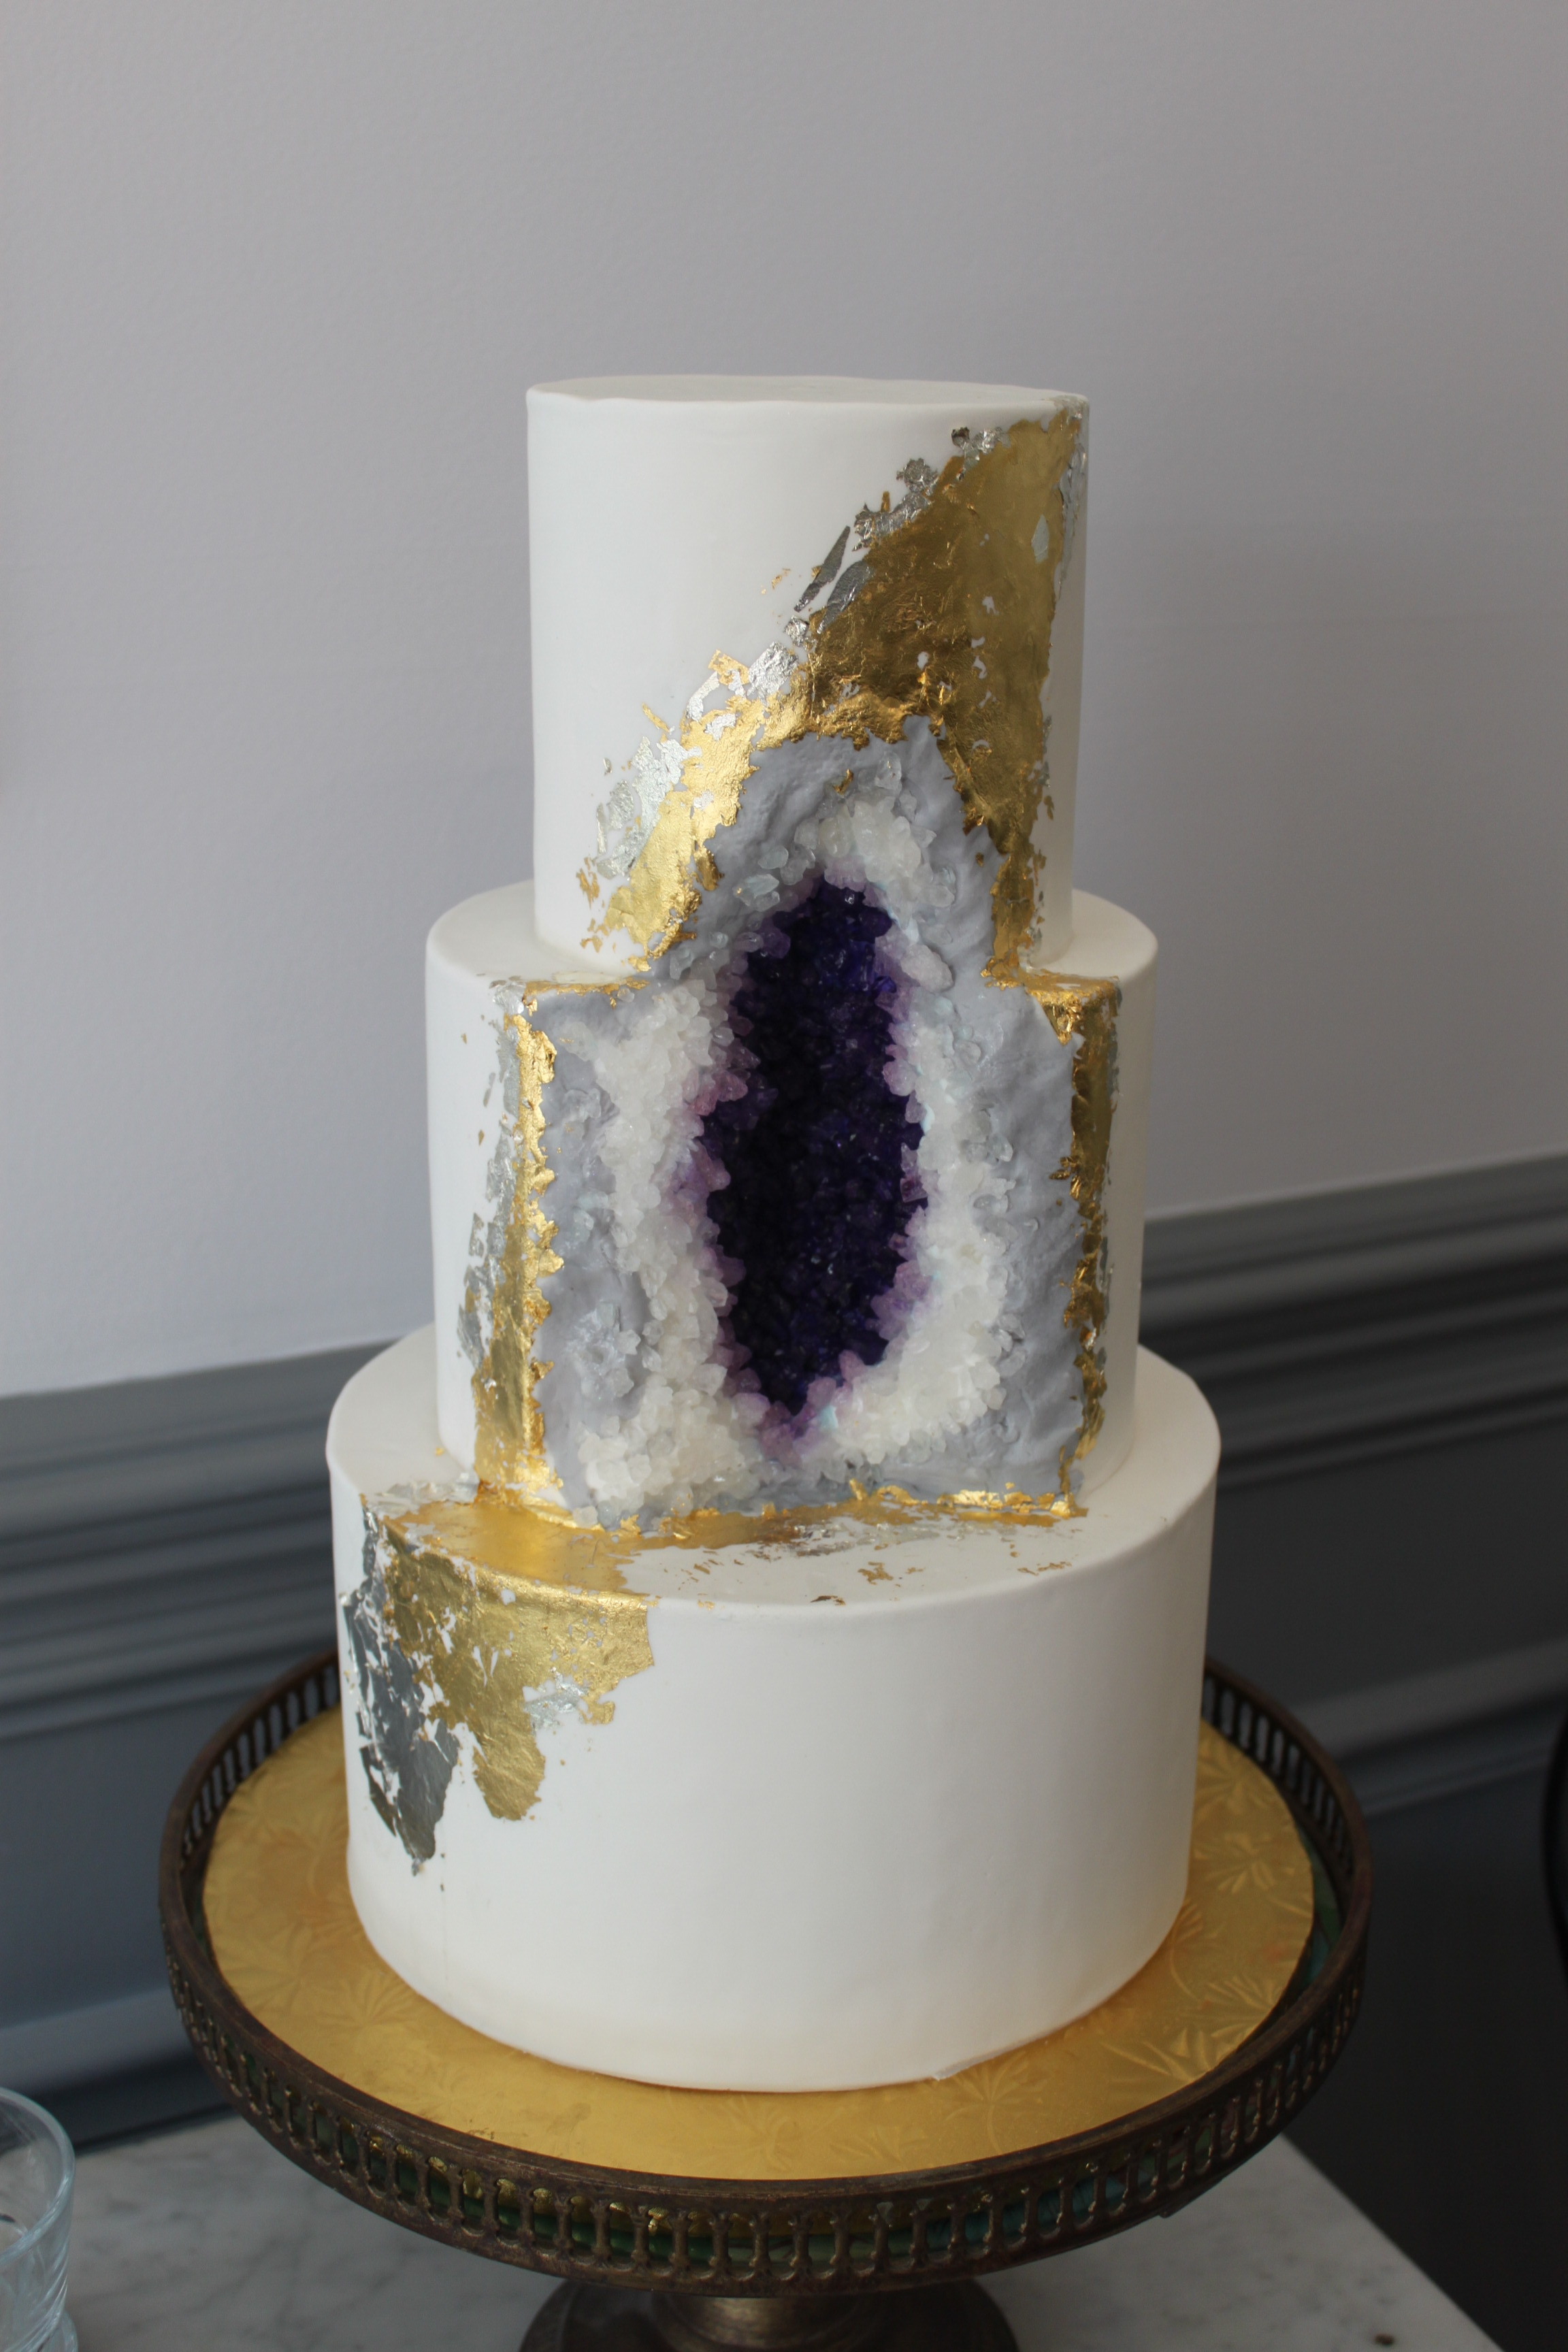 Gold & Silver Geode Cake